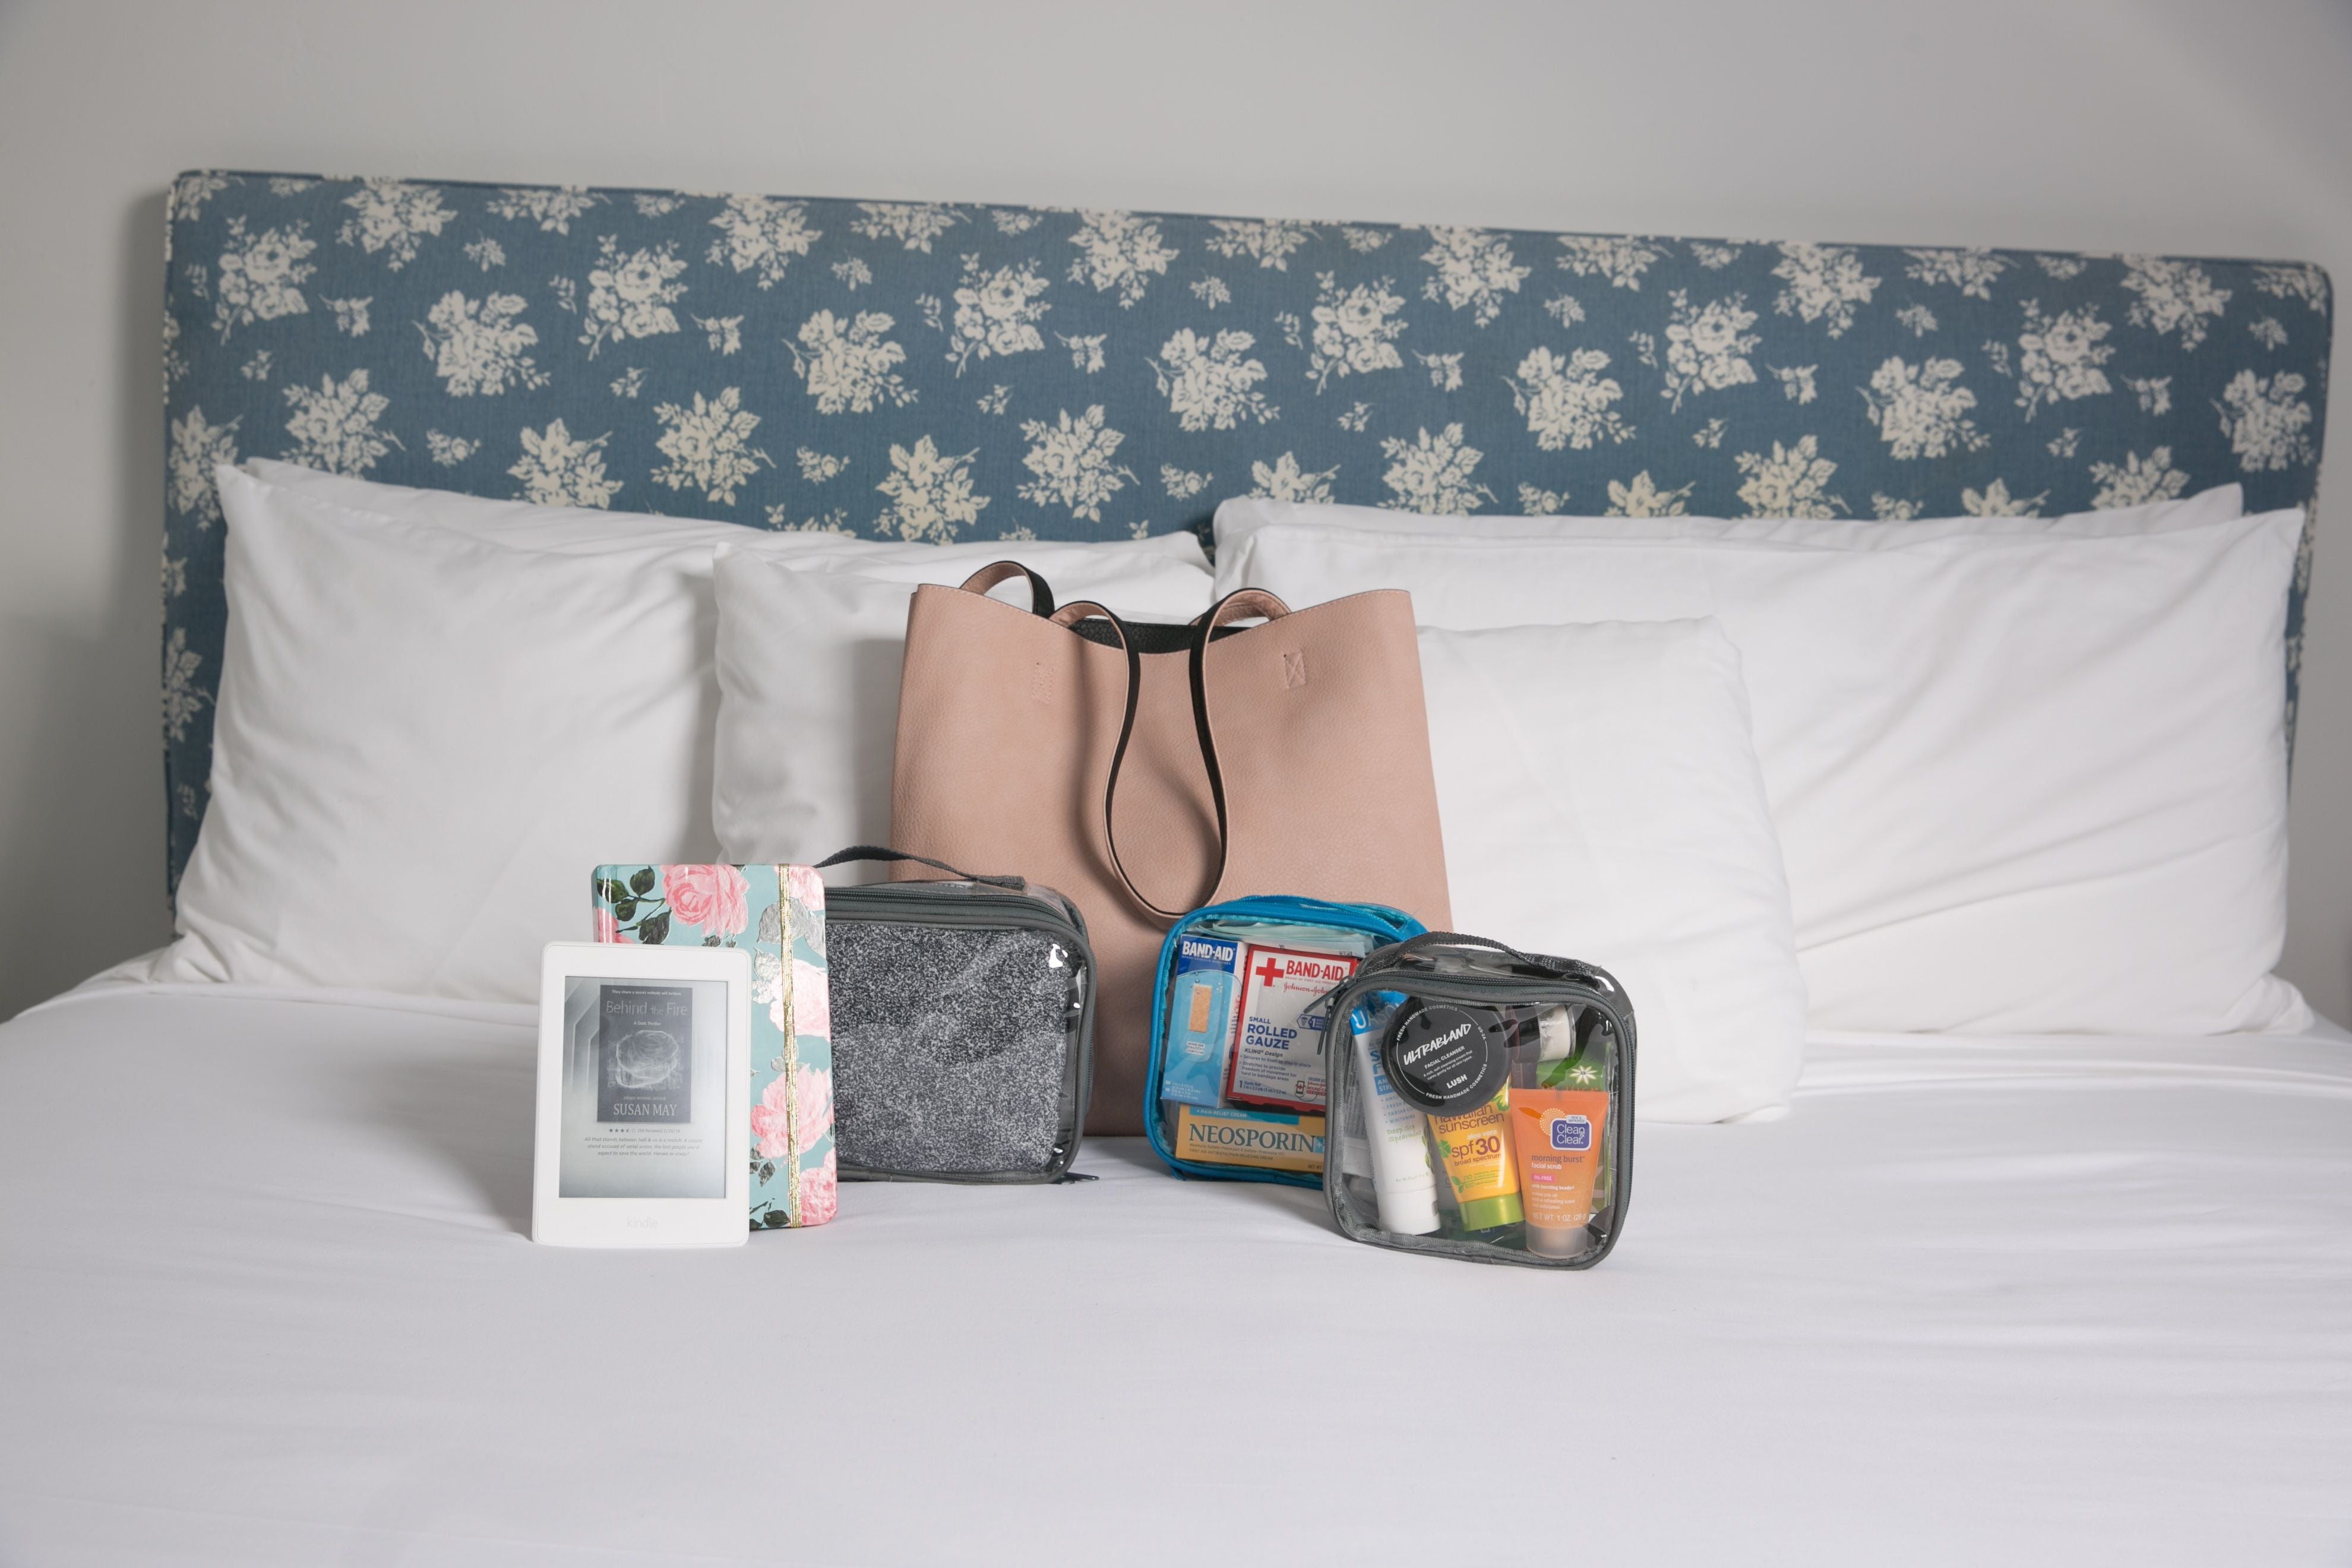 Tote bag and overnight trip essentials in clear packing cubes